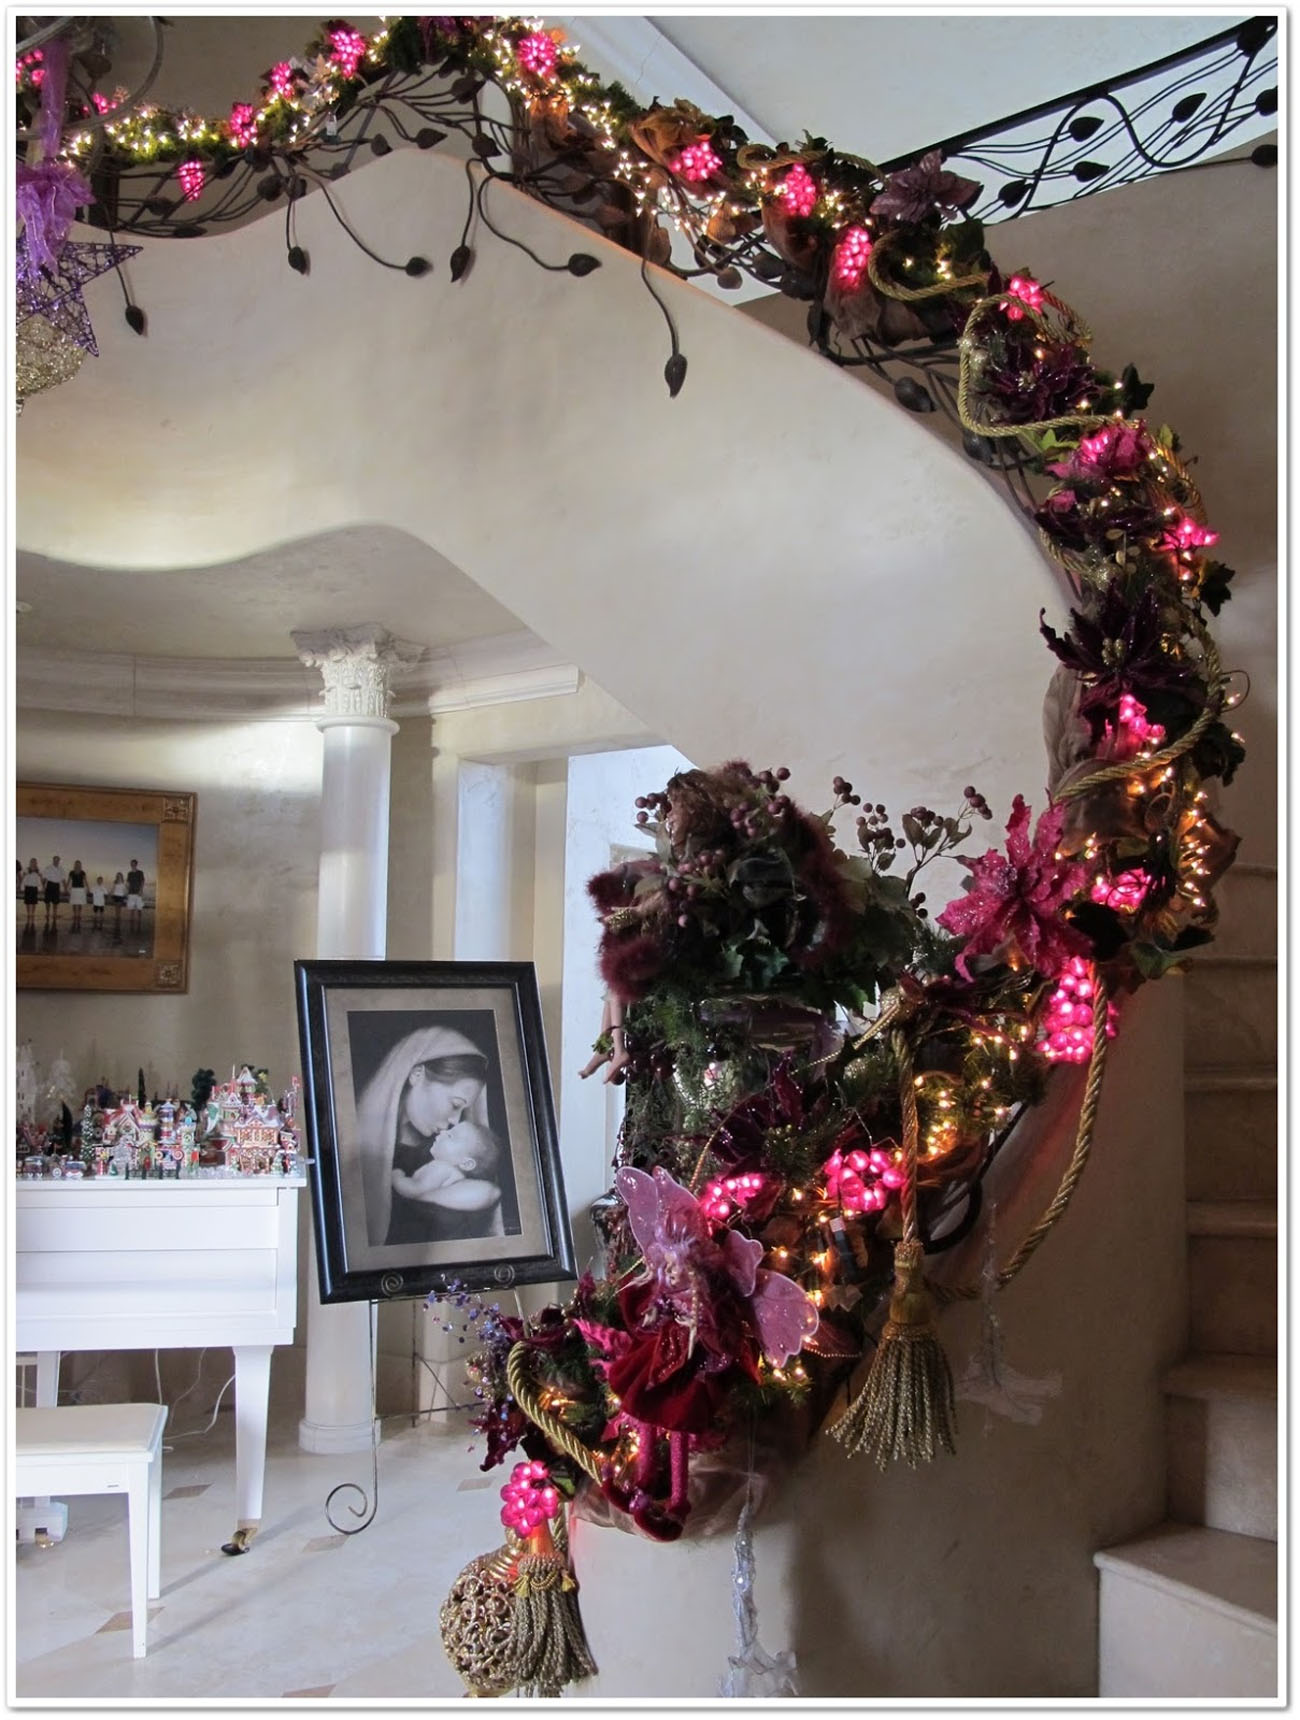 decorative staircase for a new Christmas season 48724